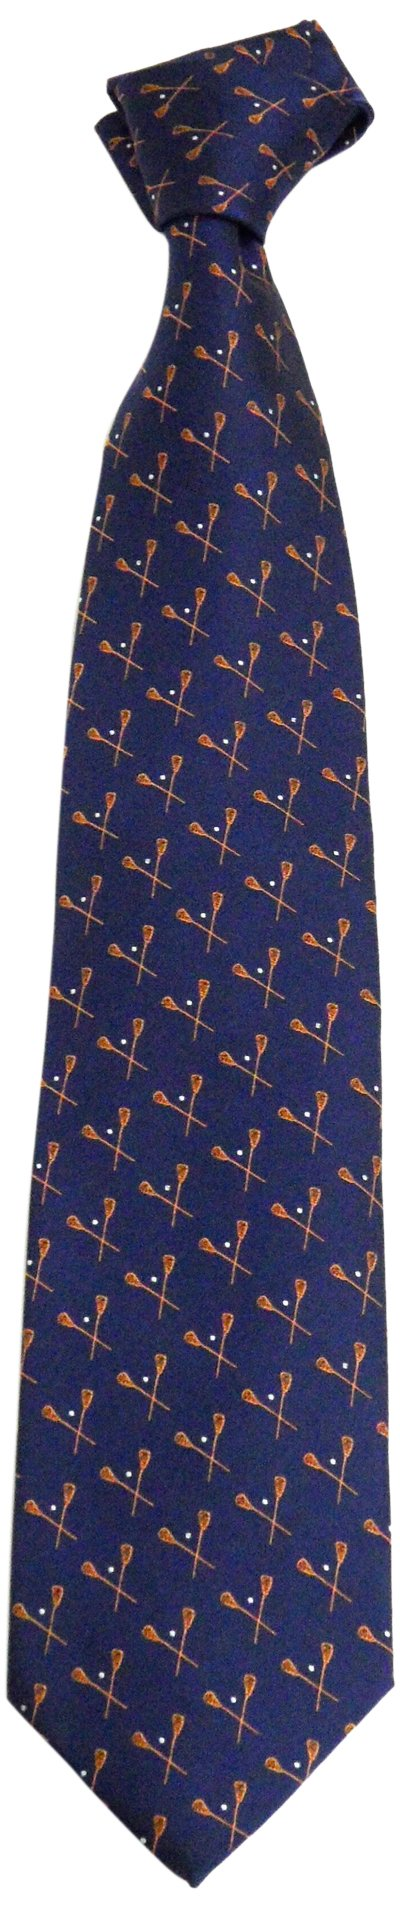 NCAA Men's Syracuse Orange Lacrosse Necktie, Blue/Orange